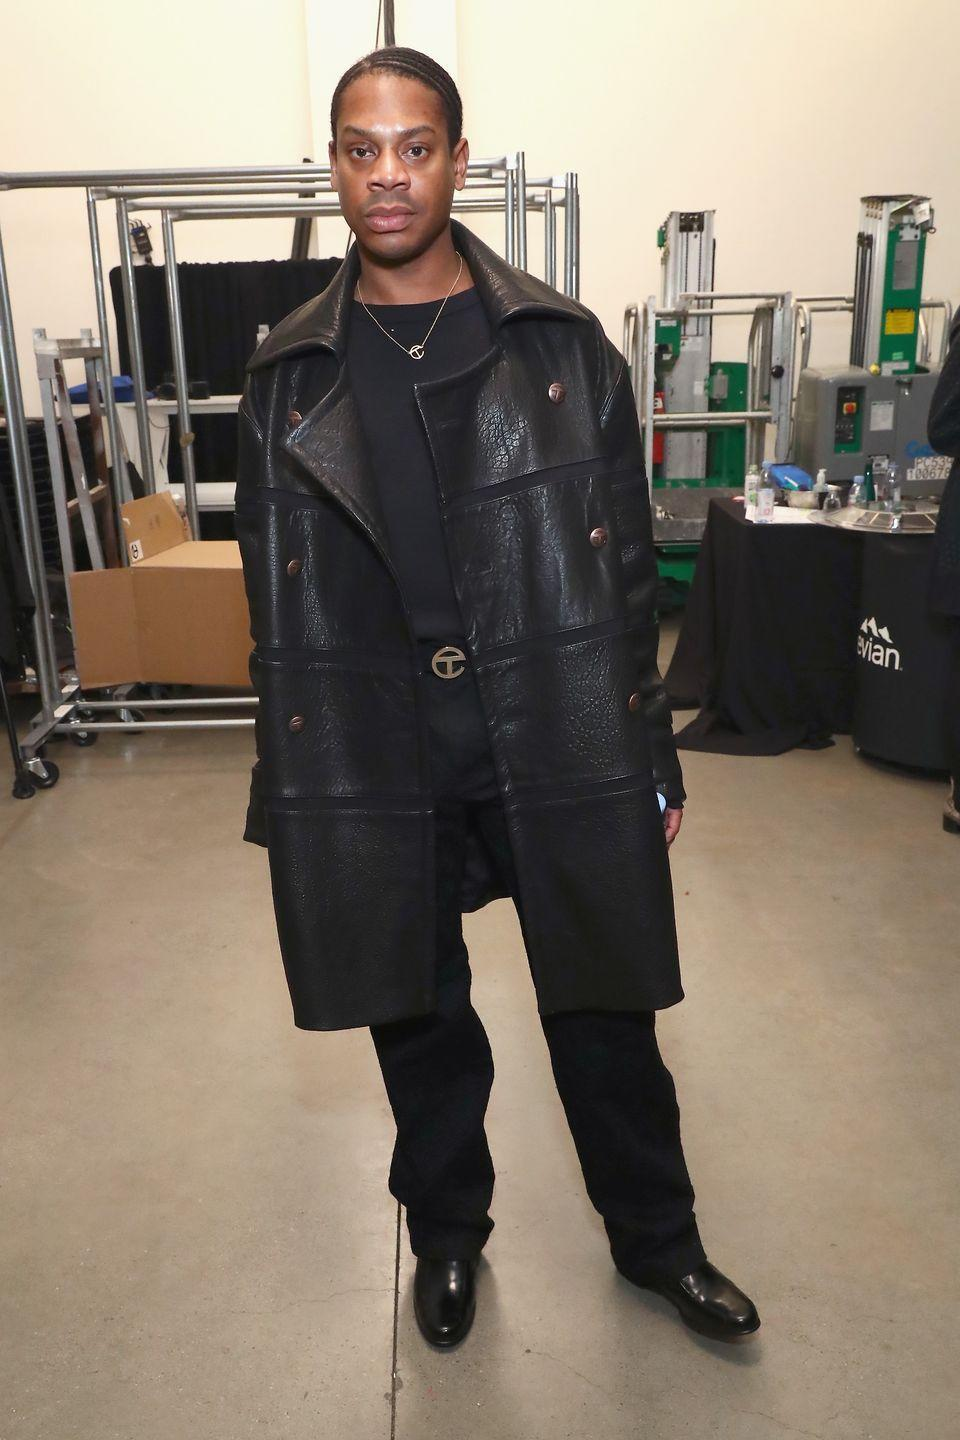 """<p><strong>Brand</strong>: Telfar</p><p>His popular purse designs with the signature logo have been dubbed the """"<a href=""""https://www.businessoffashion.com/articles/intelligence/telfar-new-york-designers-shopping-bag"""" rel=""""nofollow noopener"""" target=""""_blank"""" data-ylk=""""slk:Bushwick Birkin"""" class=""""link rapid-noclick-resp"""">Bushwick Birkin</a>."""" Telfar's designs are unisex and he's championed gender-neutral clothing. </p>"""